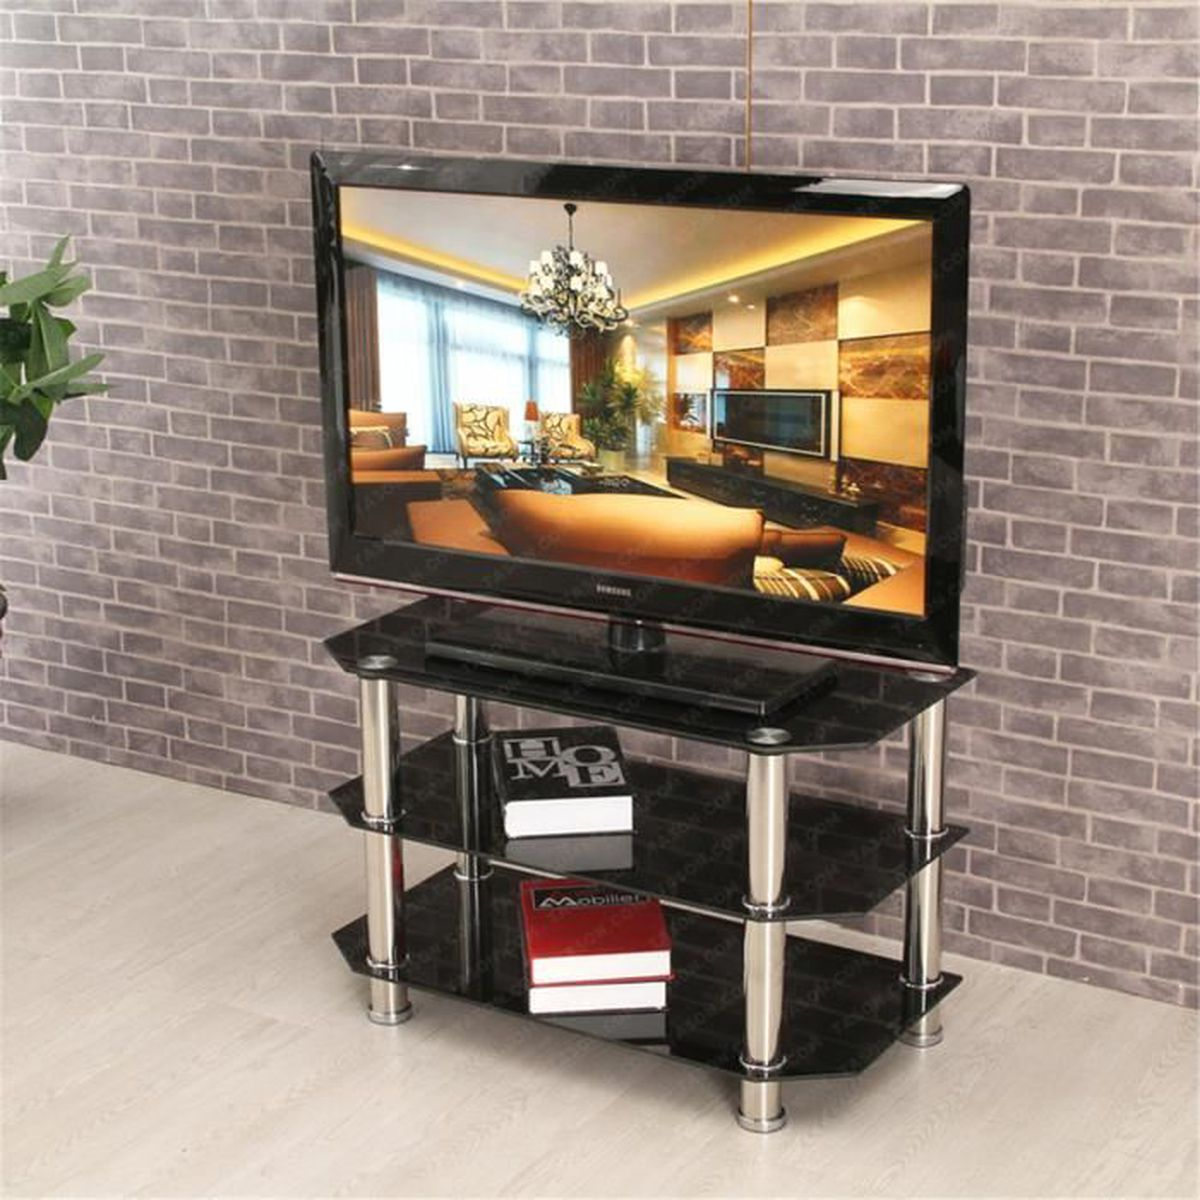 meuble tv verre trempe noir achat vente meuble tv. Black Bedroom Furniture Sets. Home Design Ideas